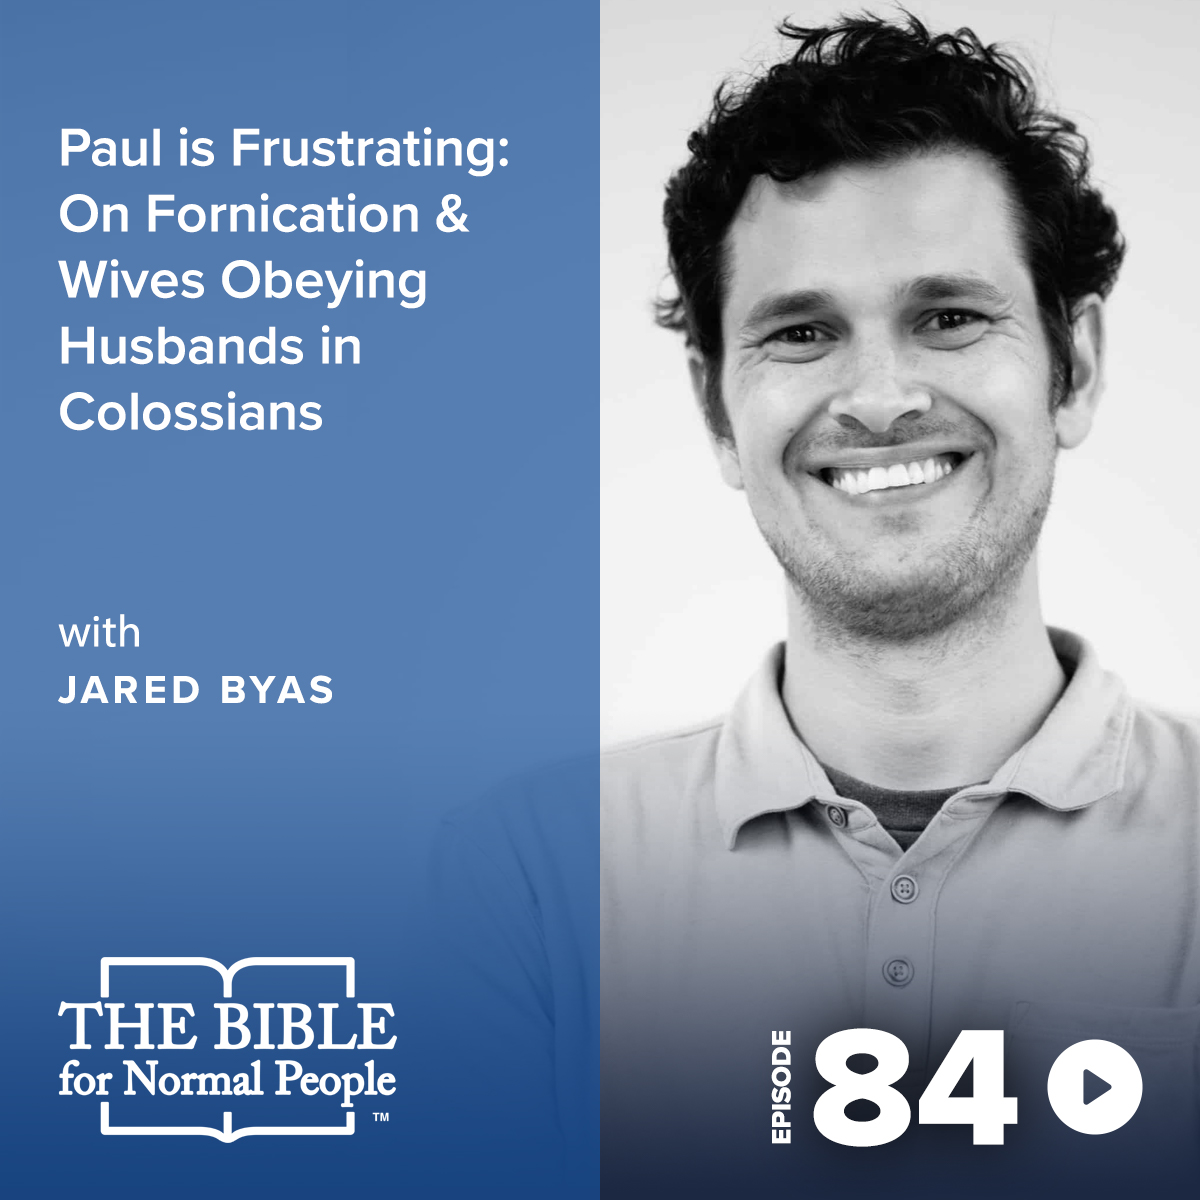 Episode 84: Jared Byas - Paul is Frustrating: On Fornication & Wives Obeying Husbands in Colossians